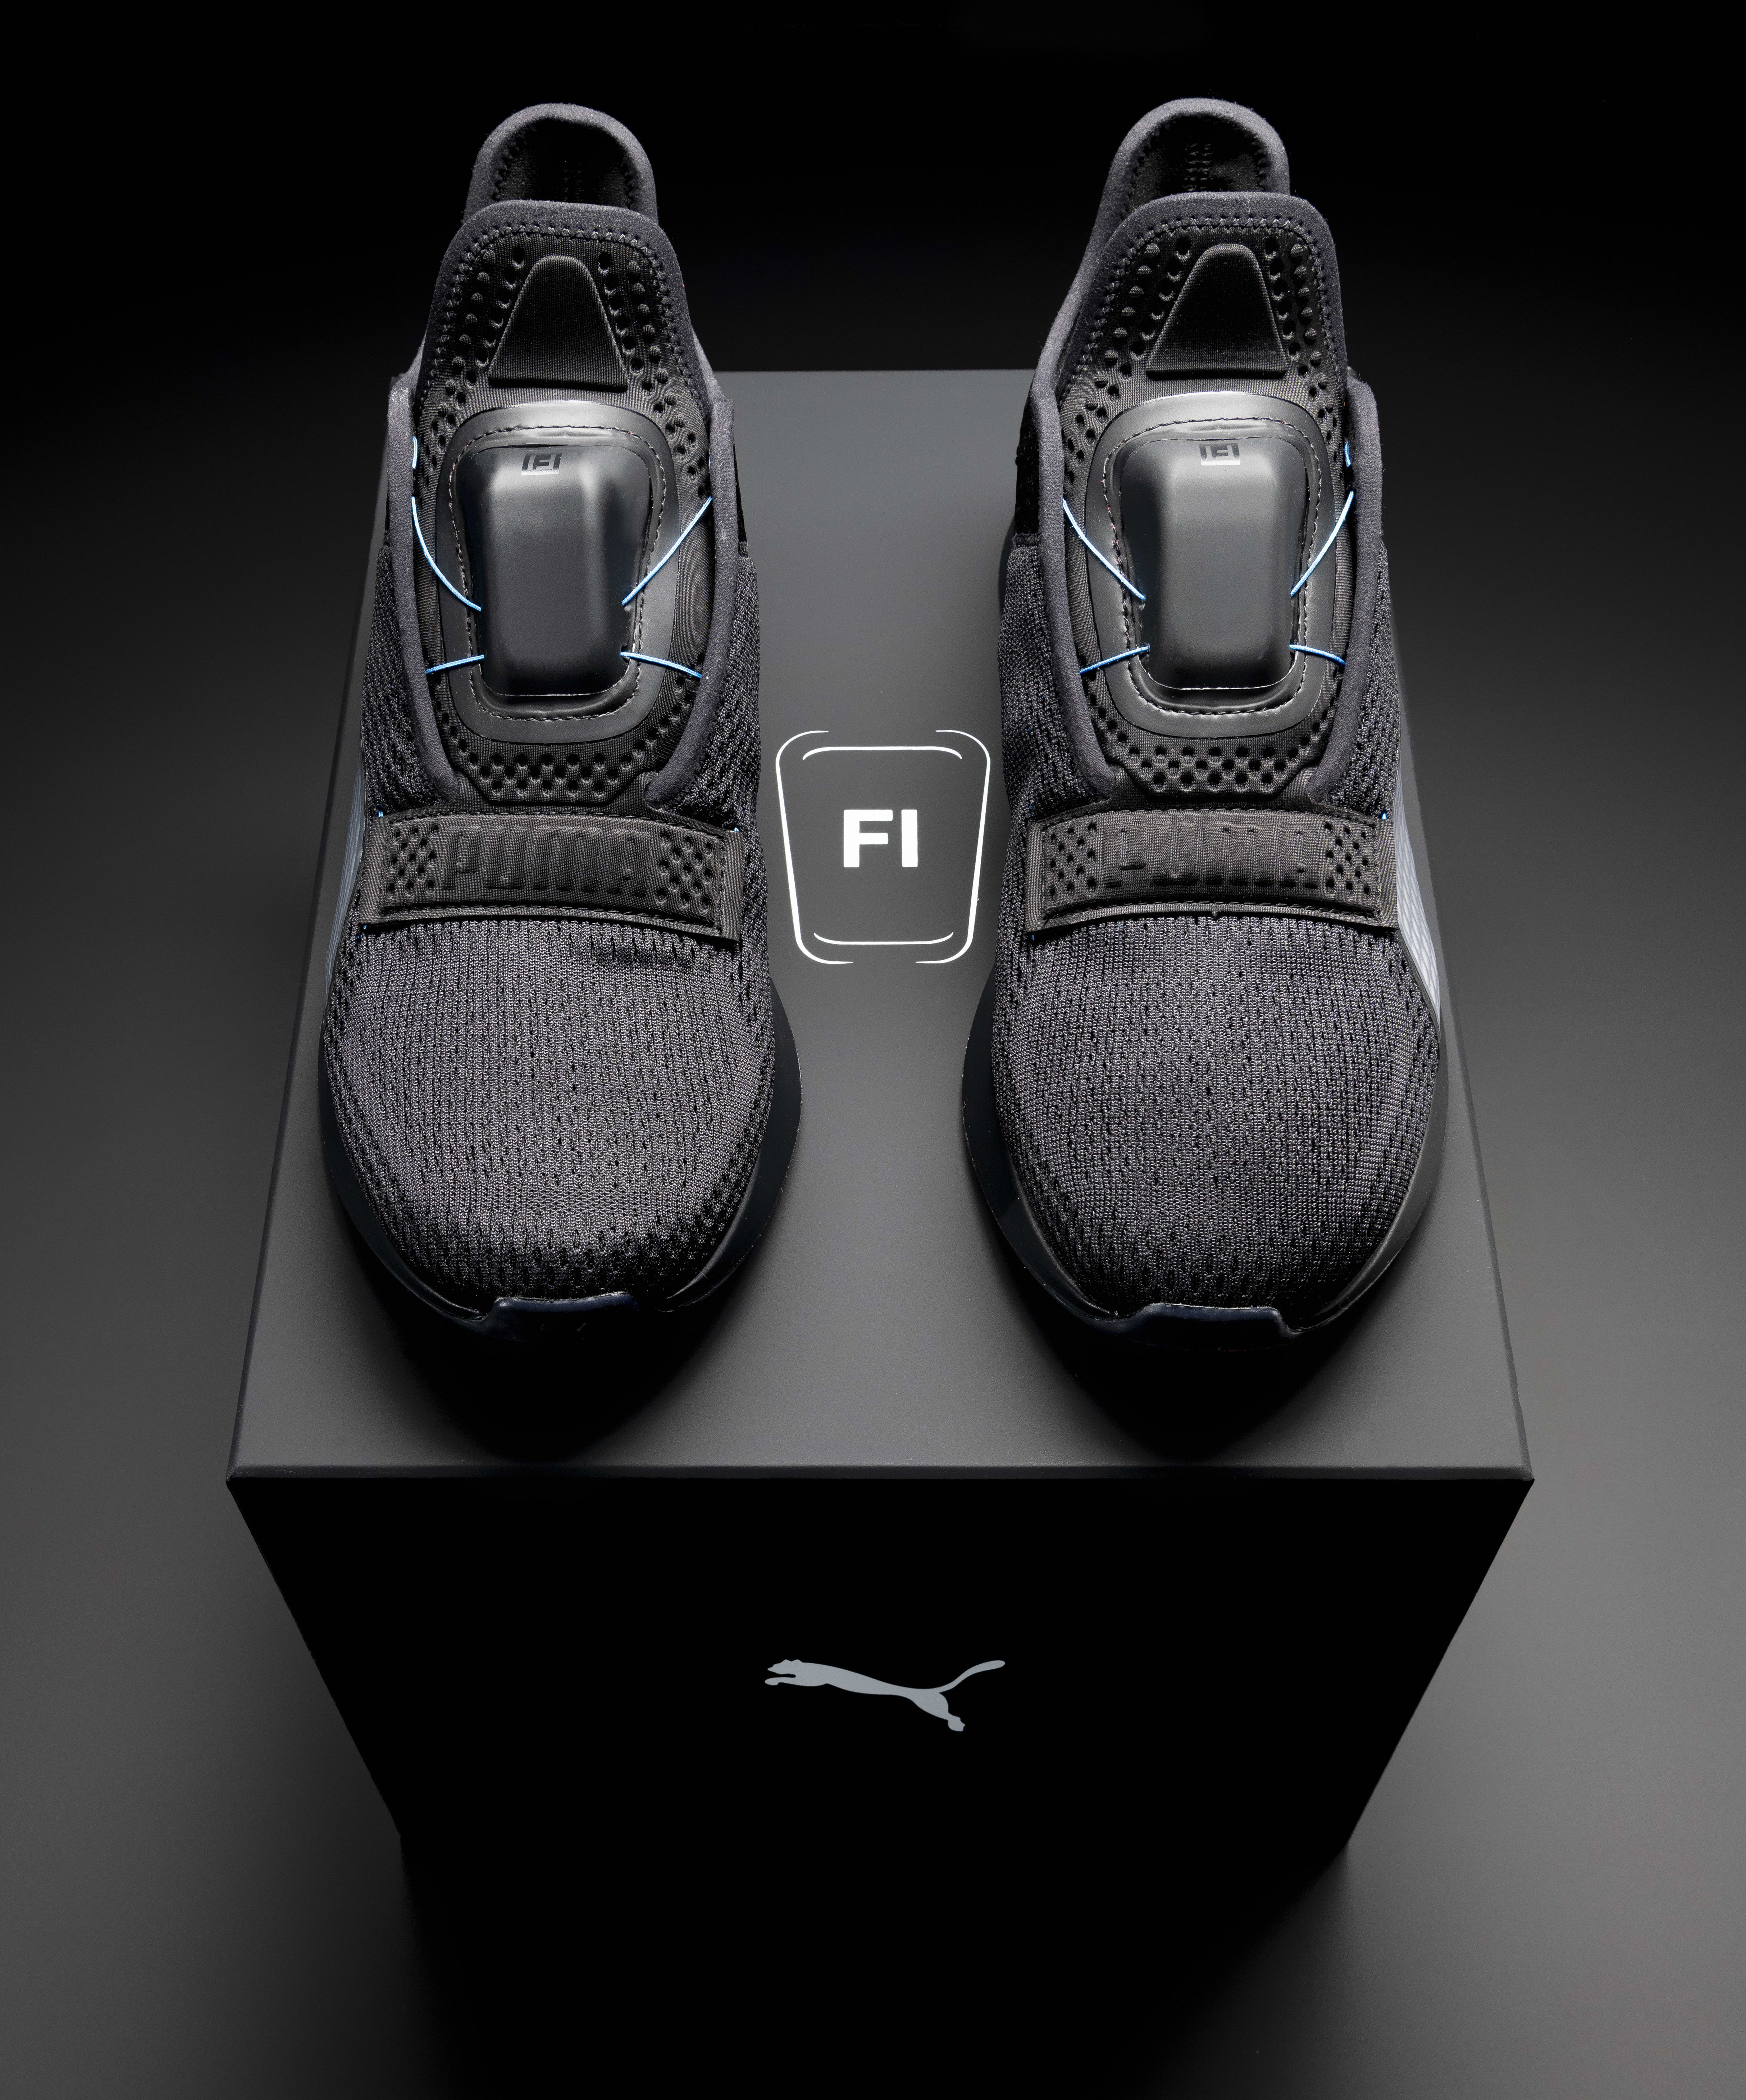 Puma Fit Intelligence Release Date | Sole Collector